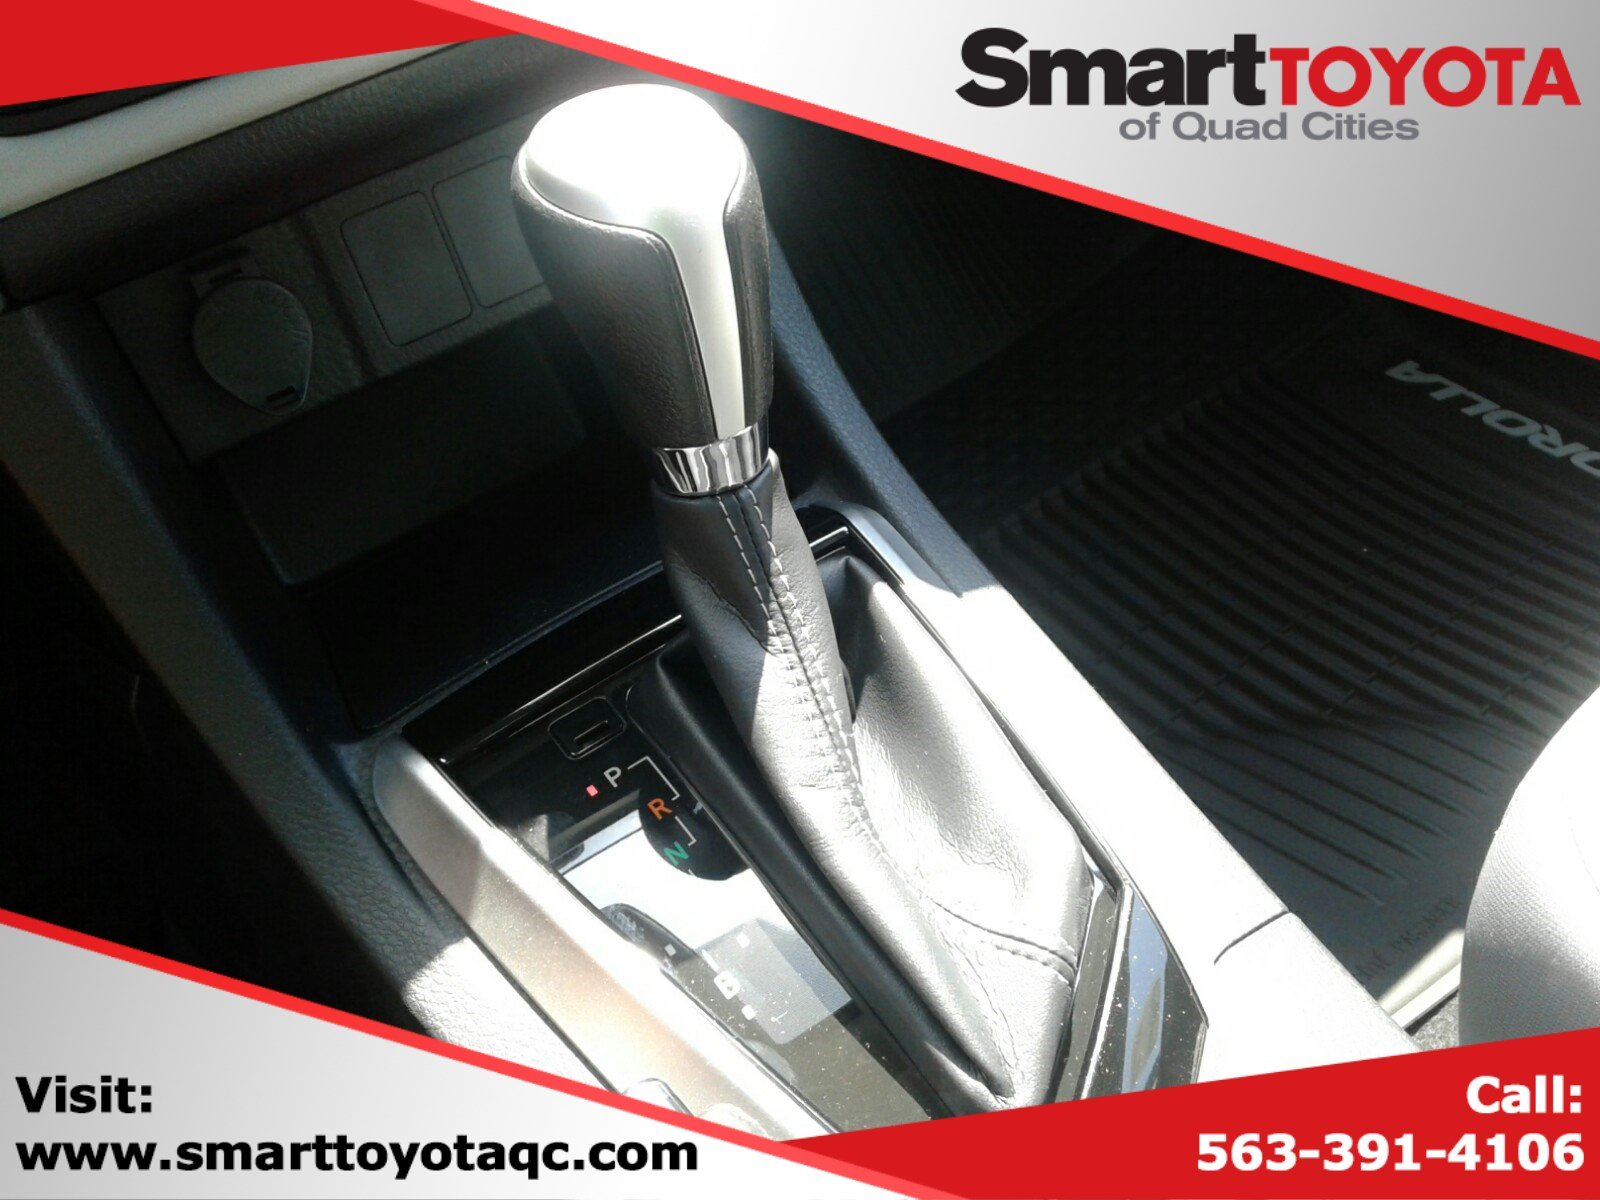 Used Cars Quad Cities Best Of Smart toyota Quad Cities Davenport Ia Car Dealership and